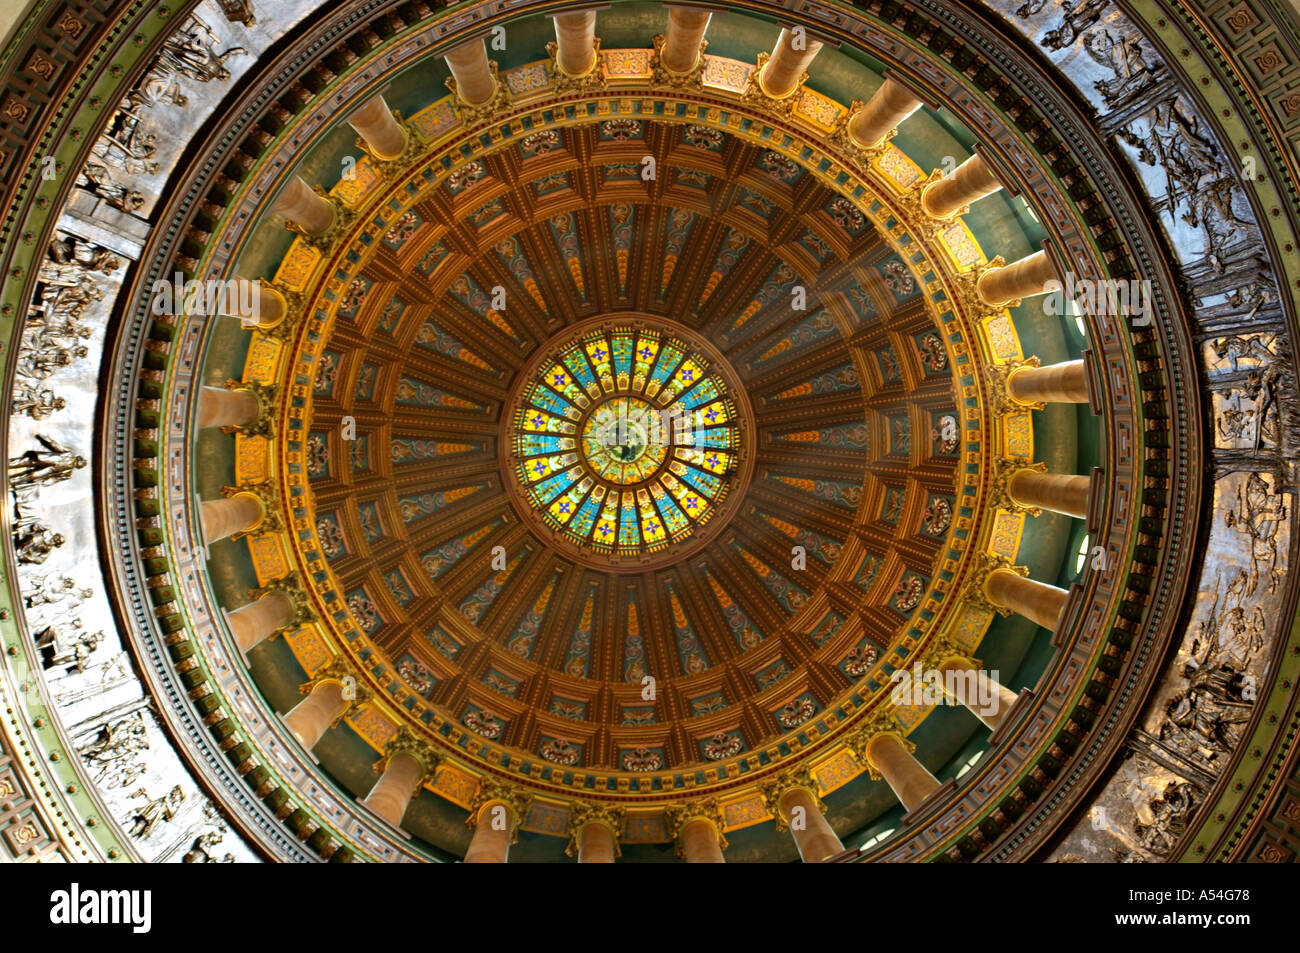 ILLINOIS Springfield Interior of State Capitol building stained glass and columns in dome - Stock Image